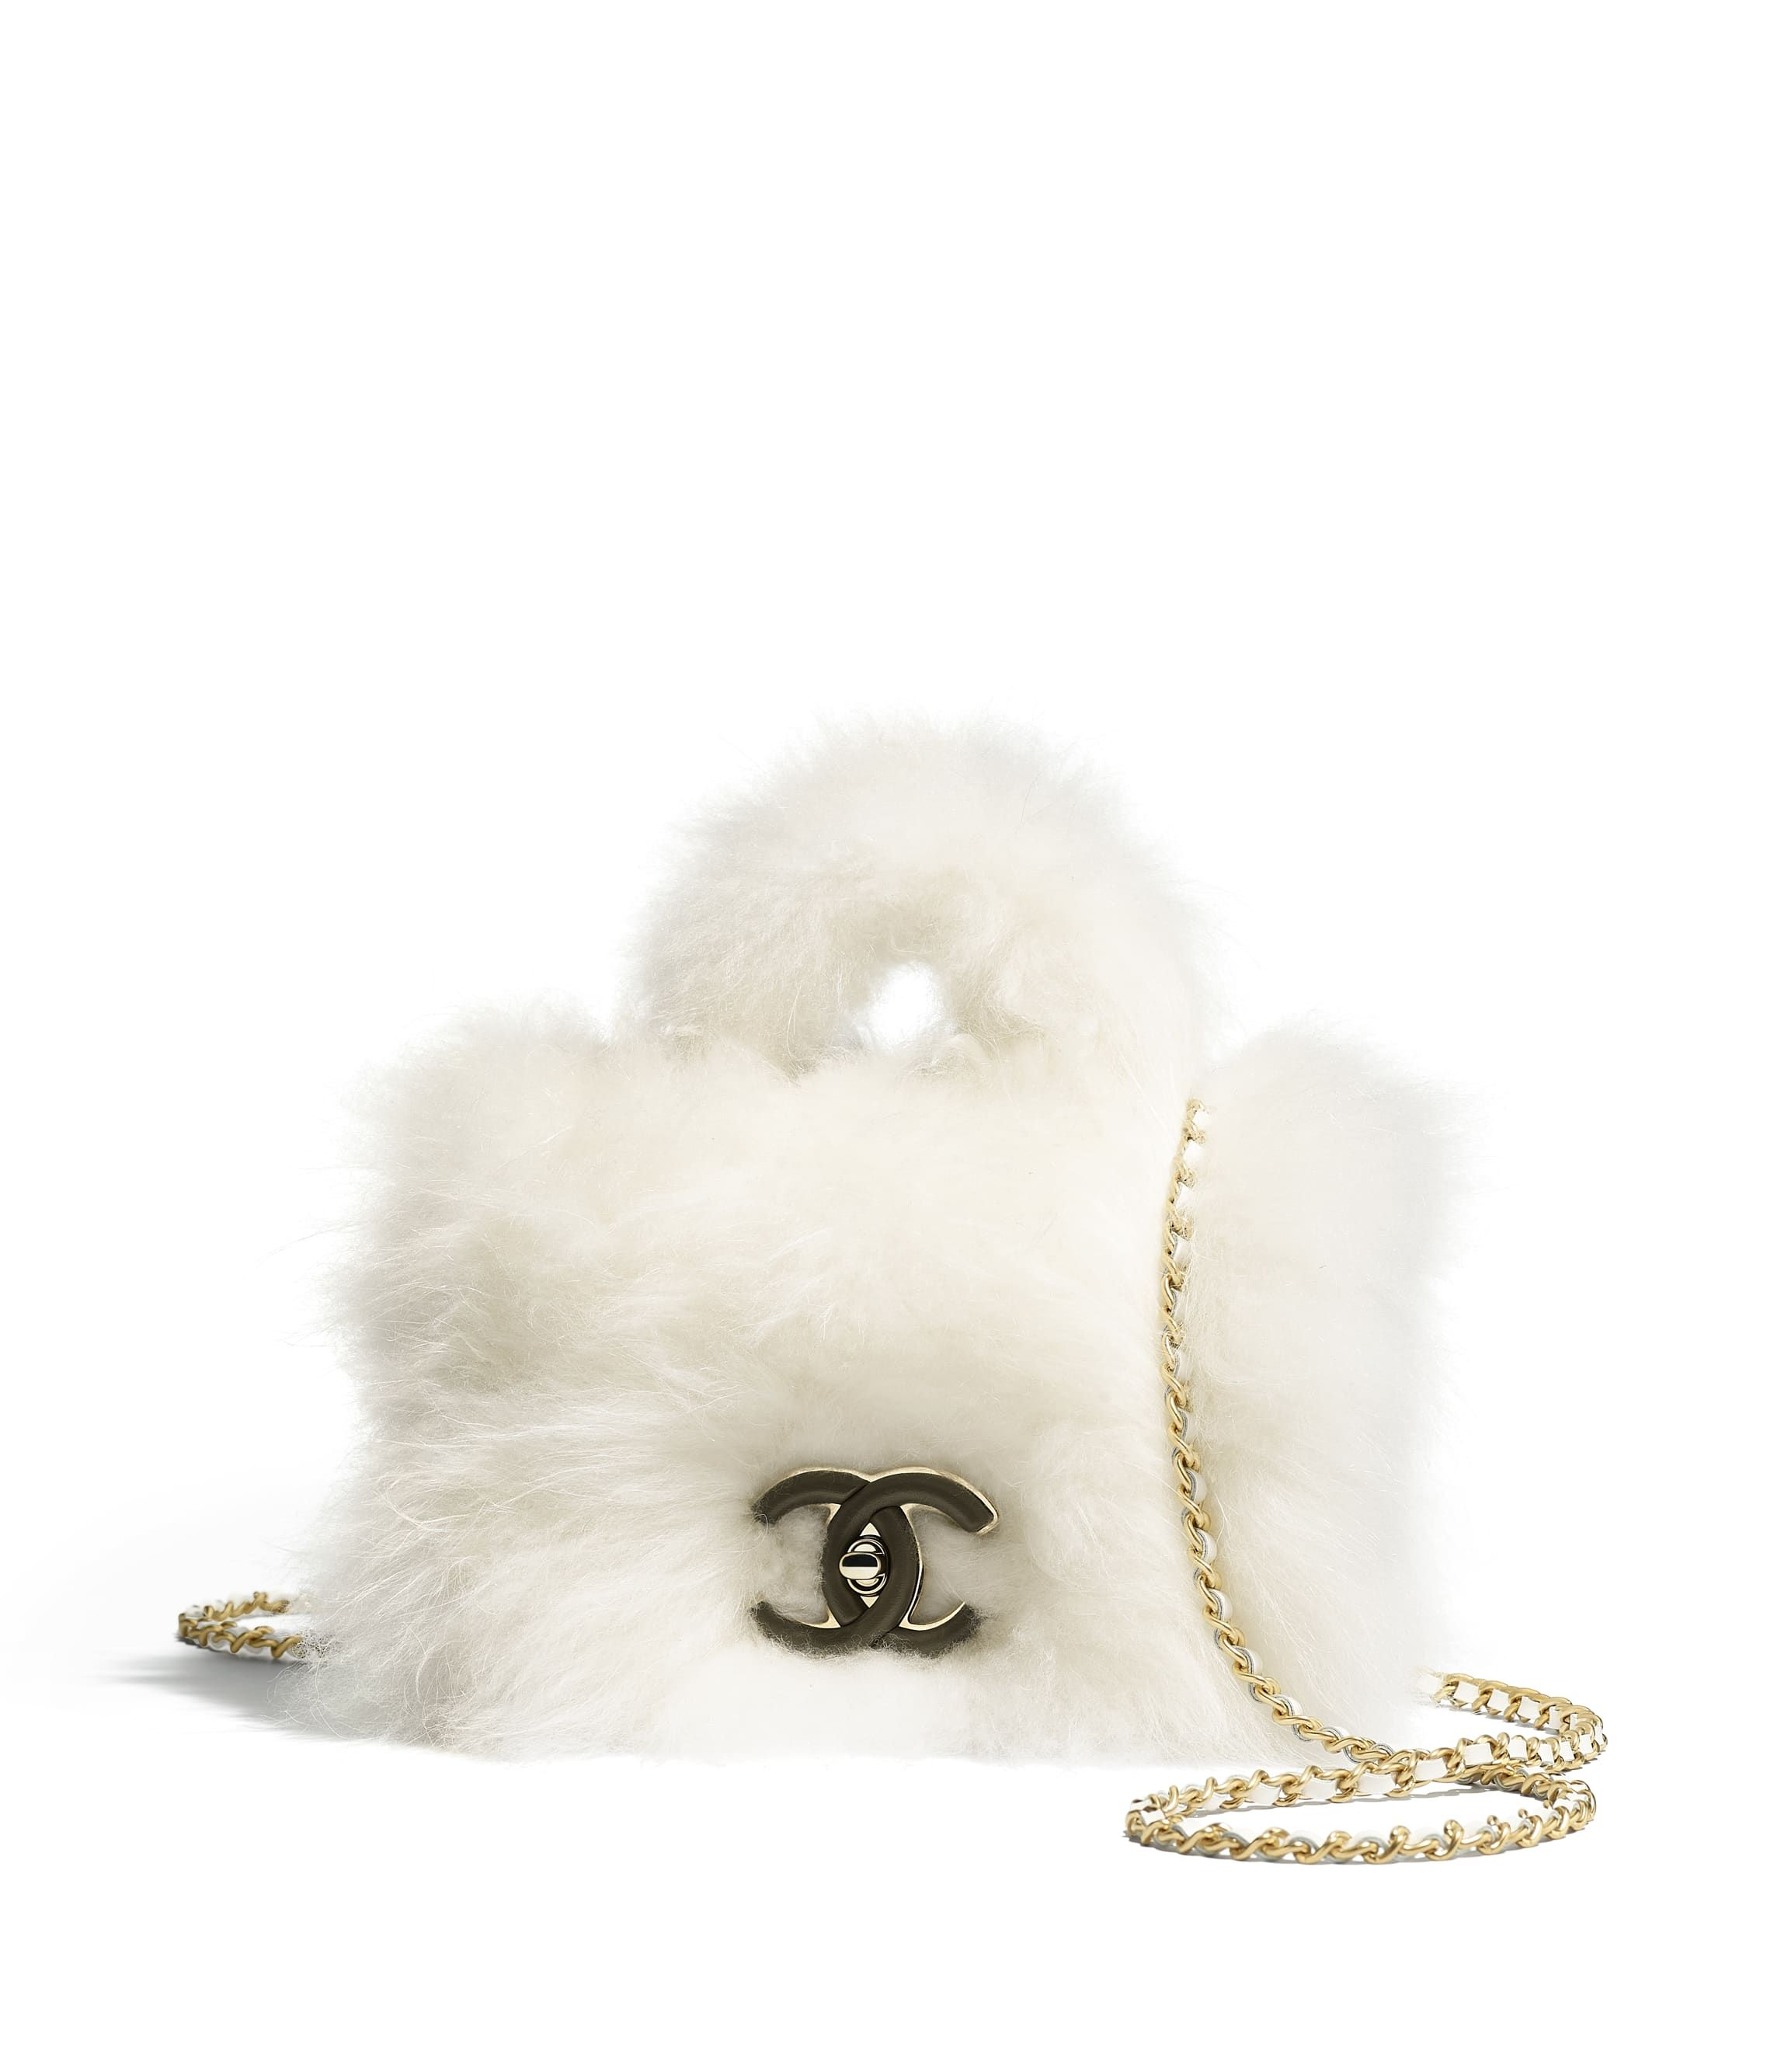 1000cf65d0 Chanel - Métiers d'Art Paris-Hamburg 2017/18 | White shearling ...